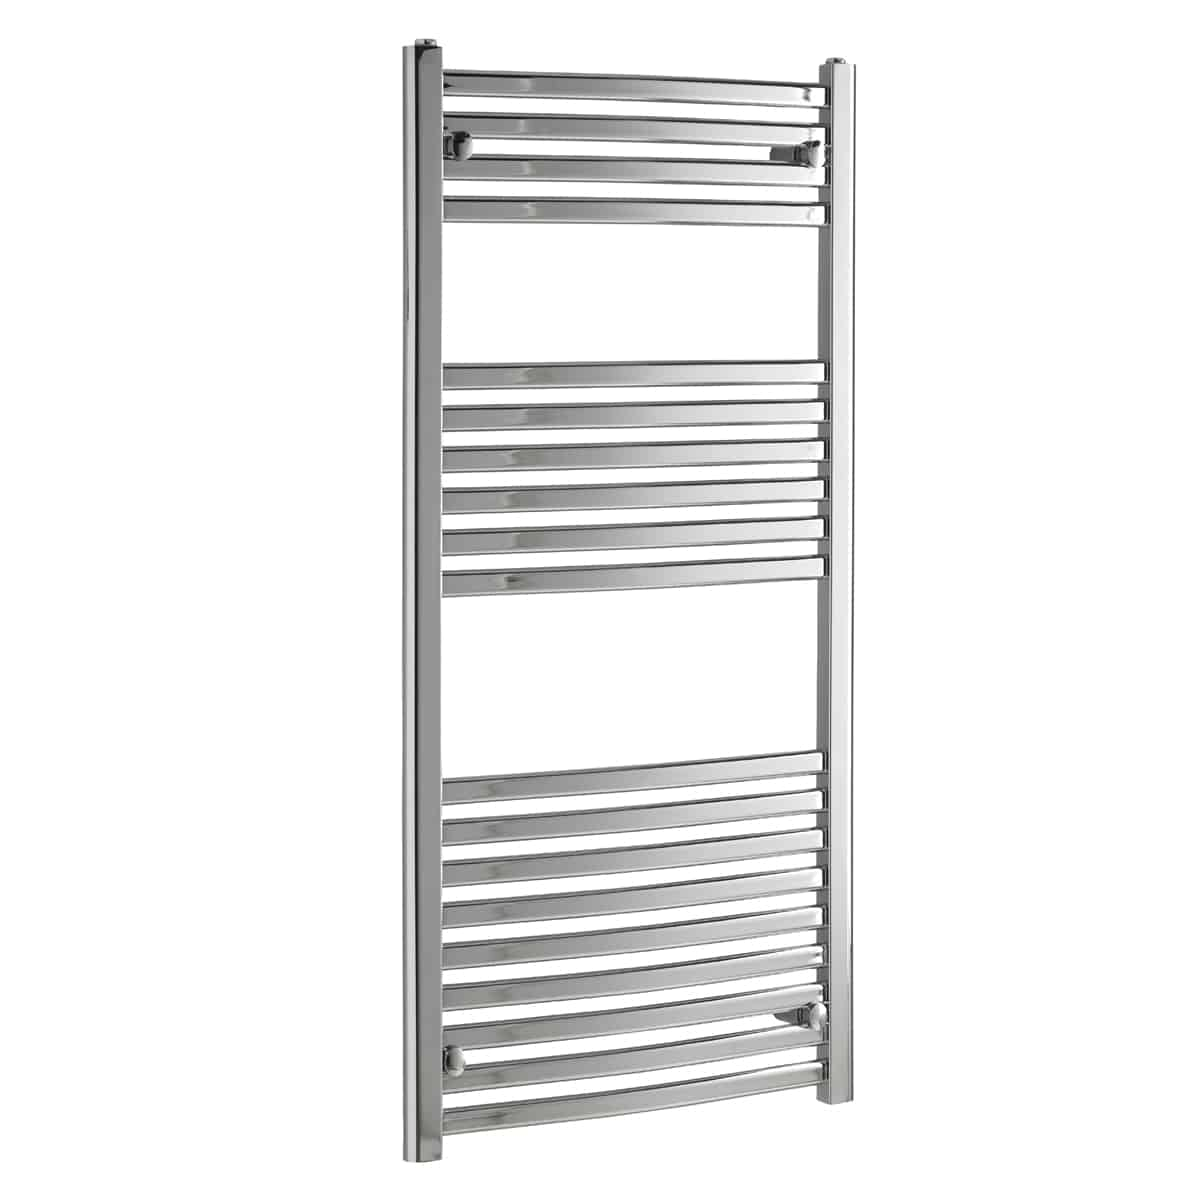 Heated Towel Rail Timer Wiring Diagram: CROSBY Flat Tube Modern Heated Towel Rail, Chrome